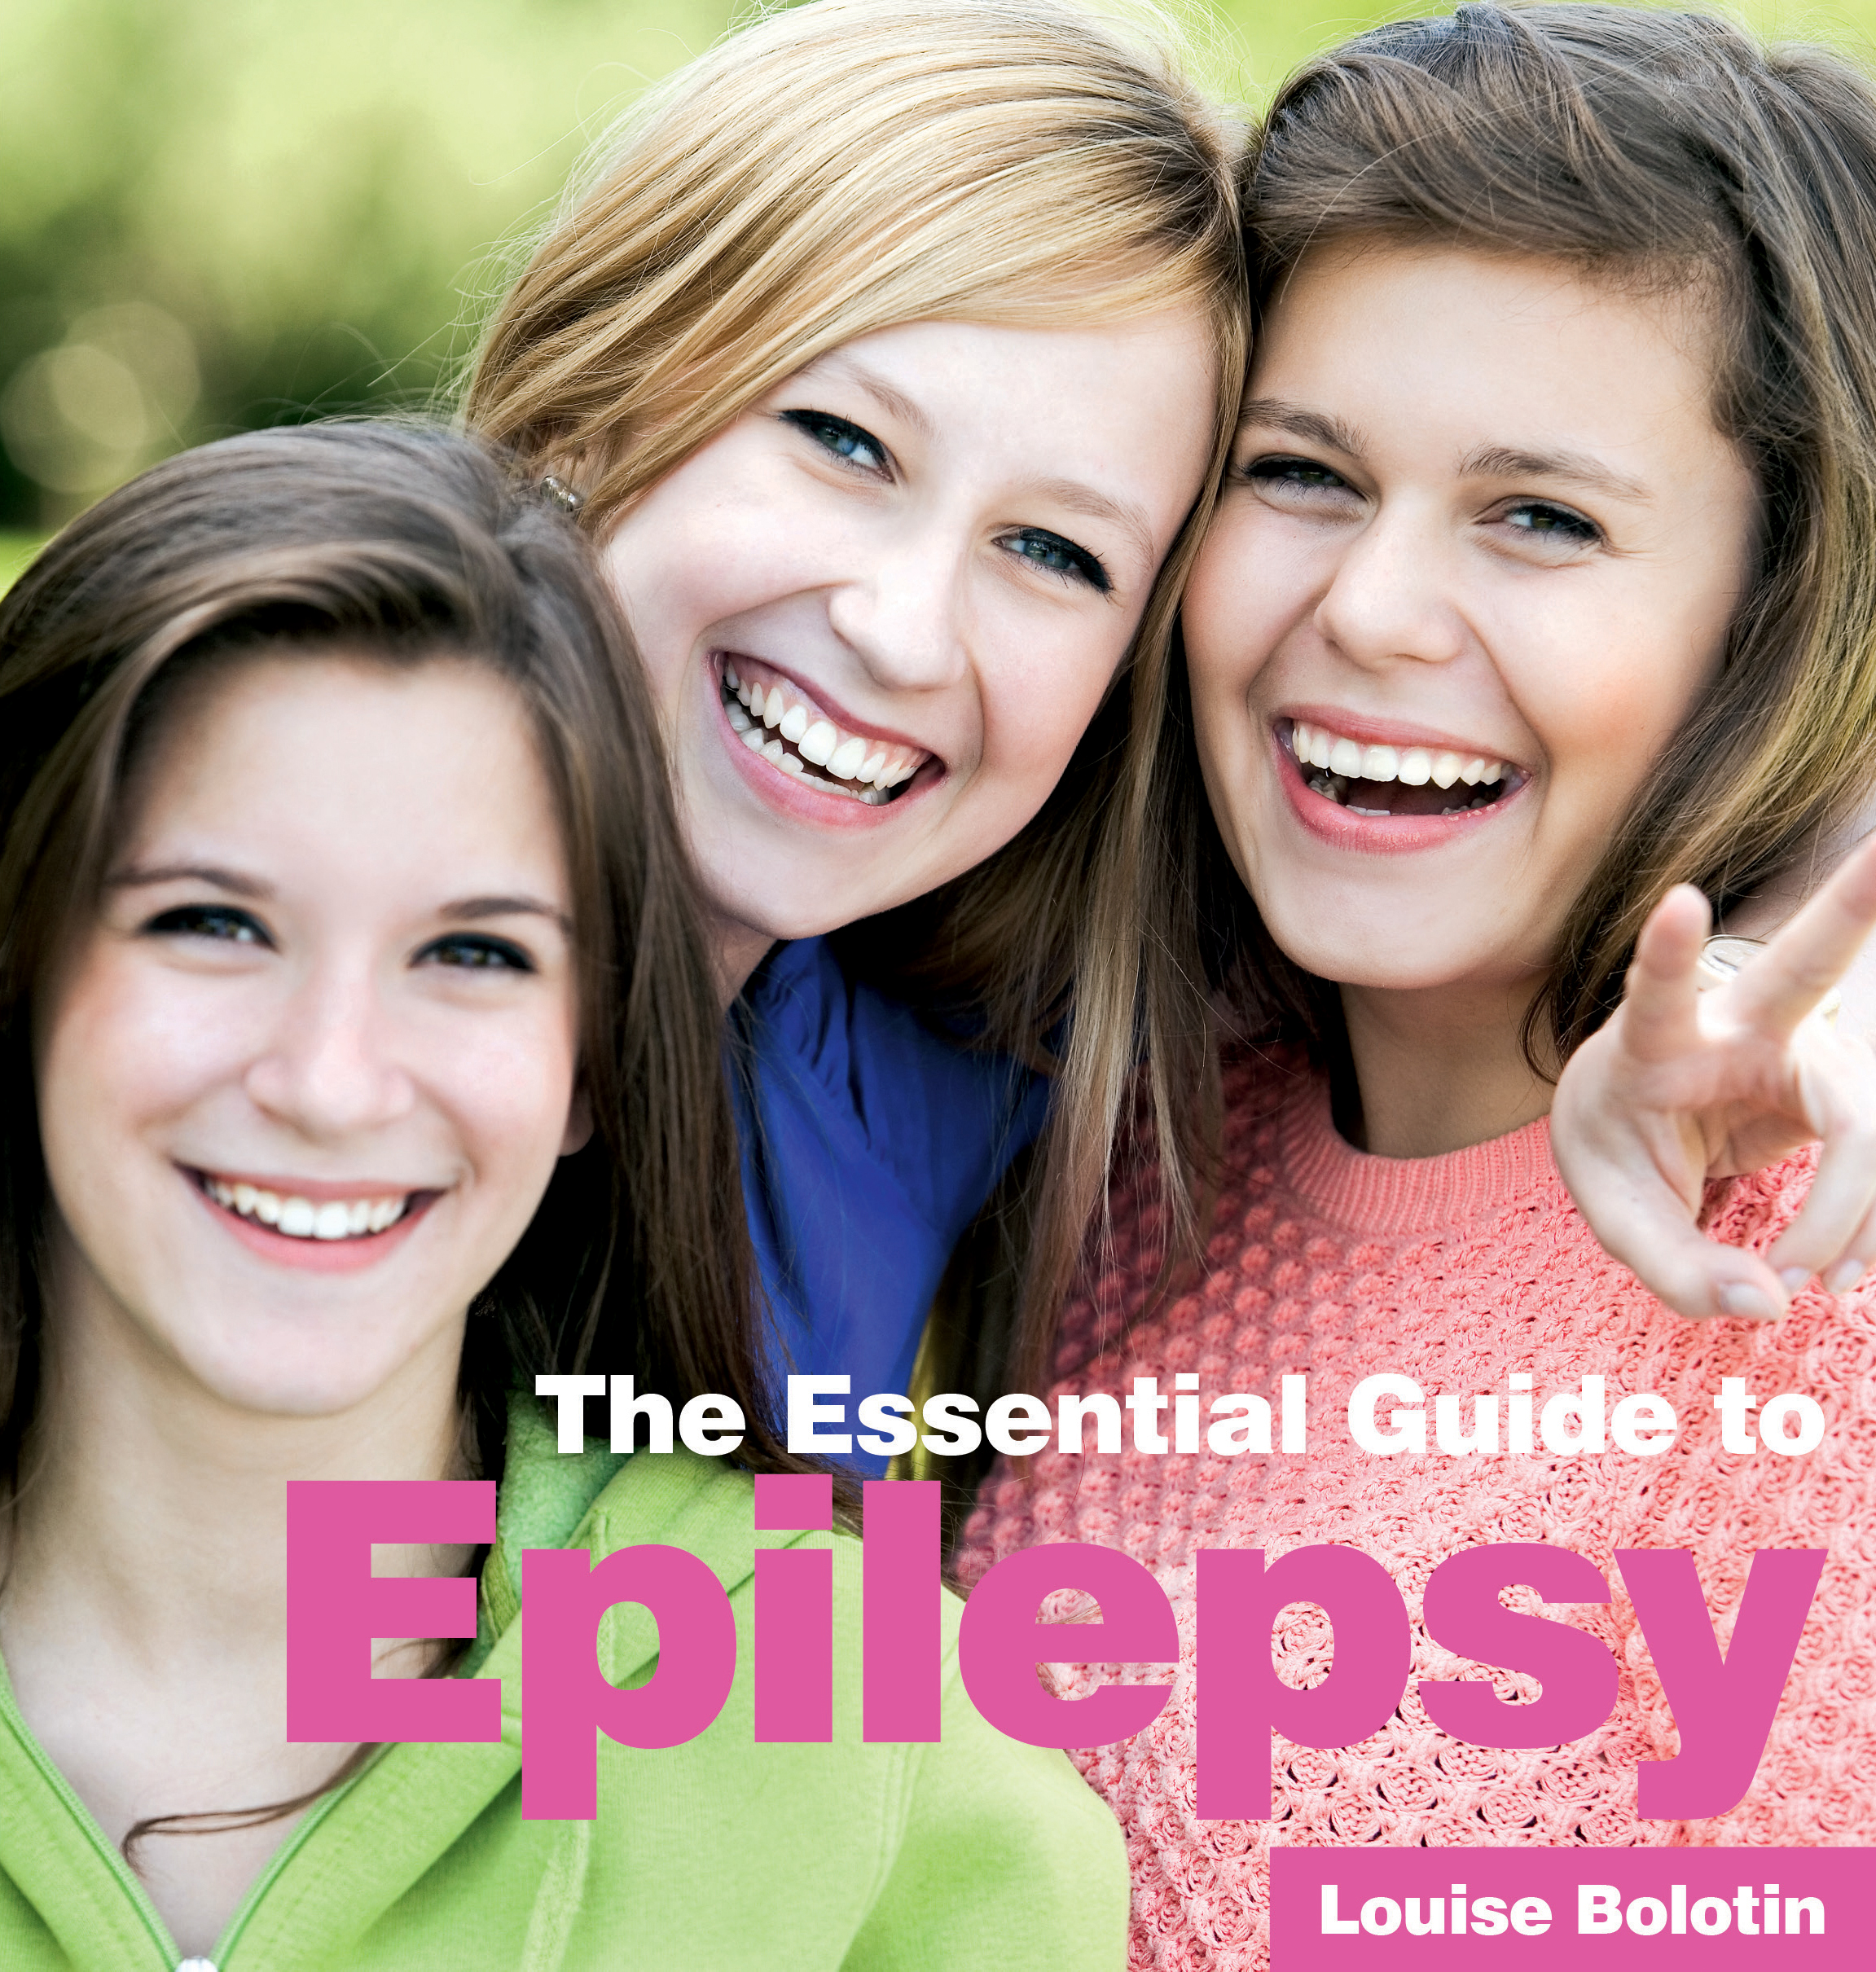 The Essential Guide To Epilepsy